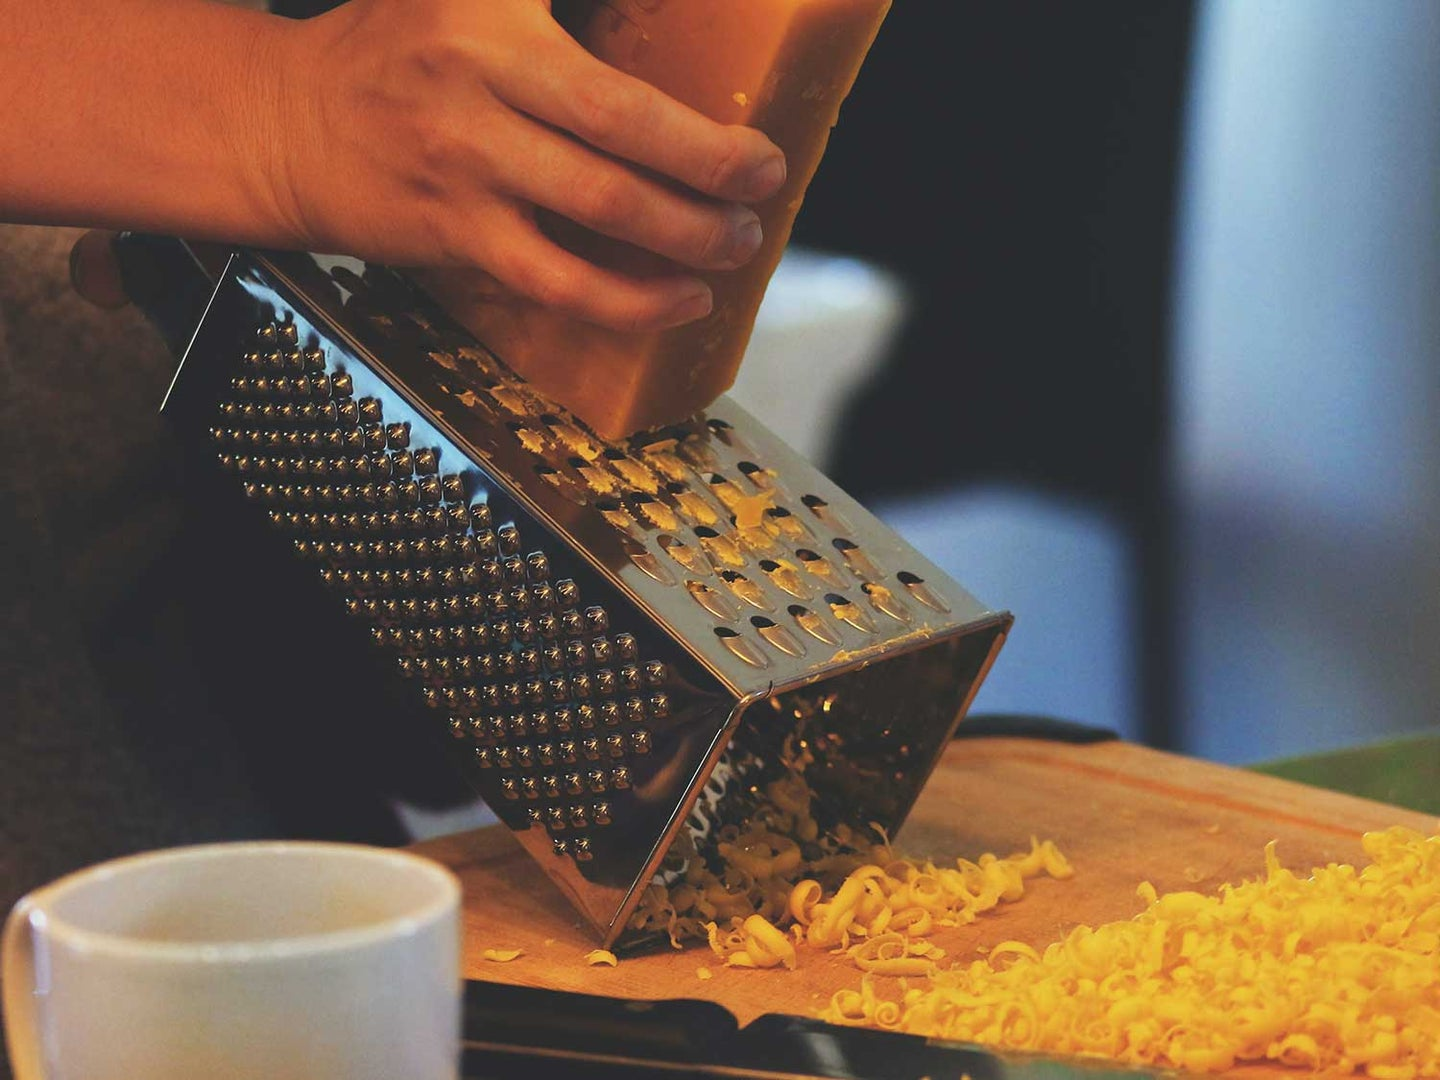 Grating block of cheese with cheese grater.